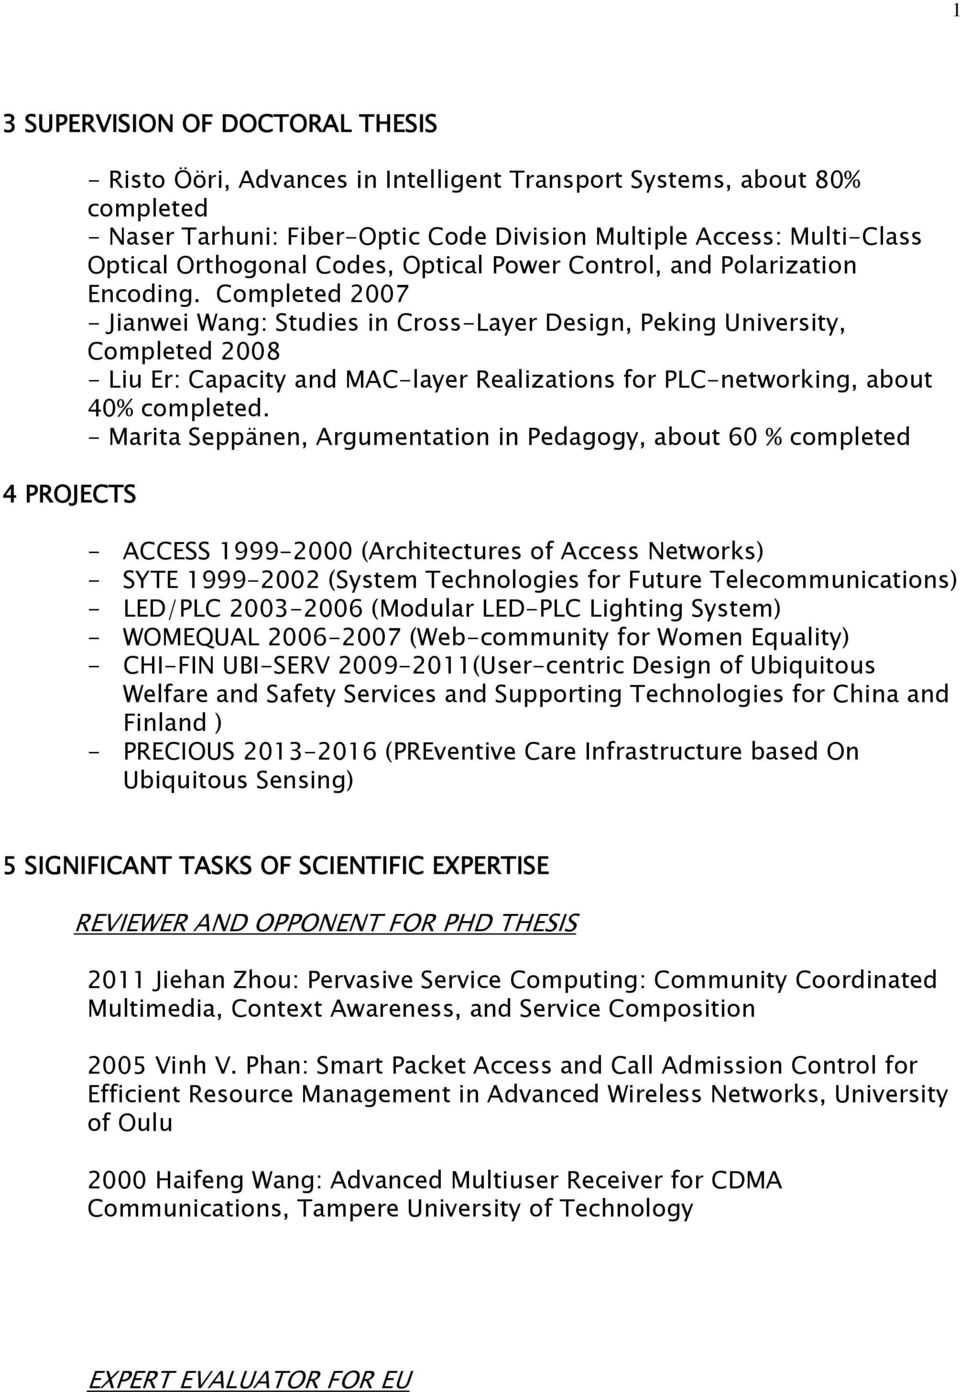 Completed 2007 - Jianwei Wang: Studies in Cross-Layer Design, Peking University, Completed 2008 - Liu Er: Capacity and MAC-layer Realizations for PLC-networking, about 40% completed.